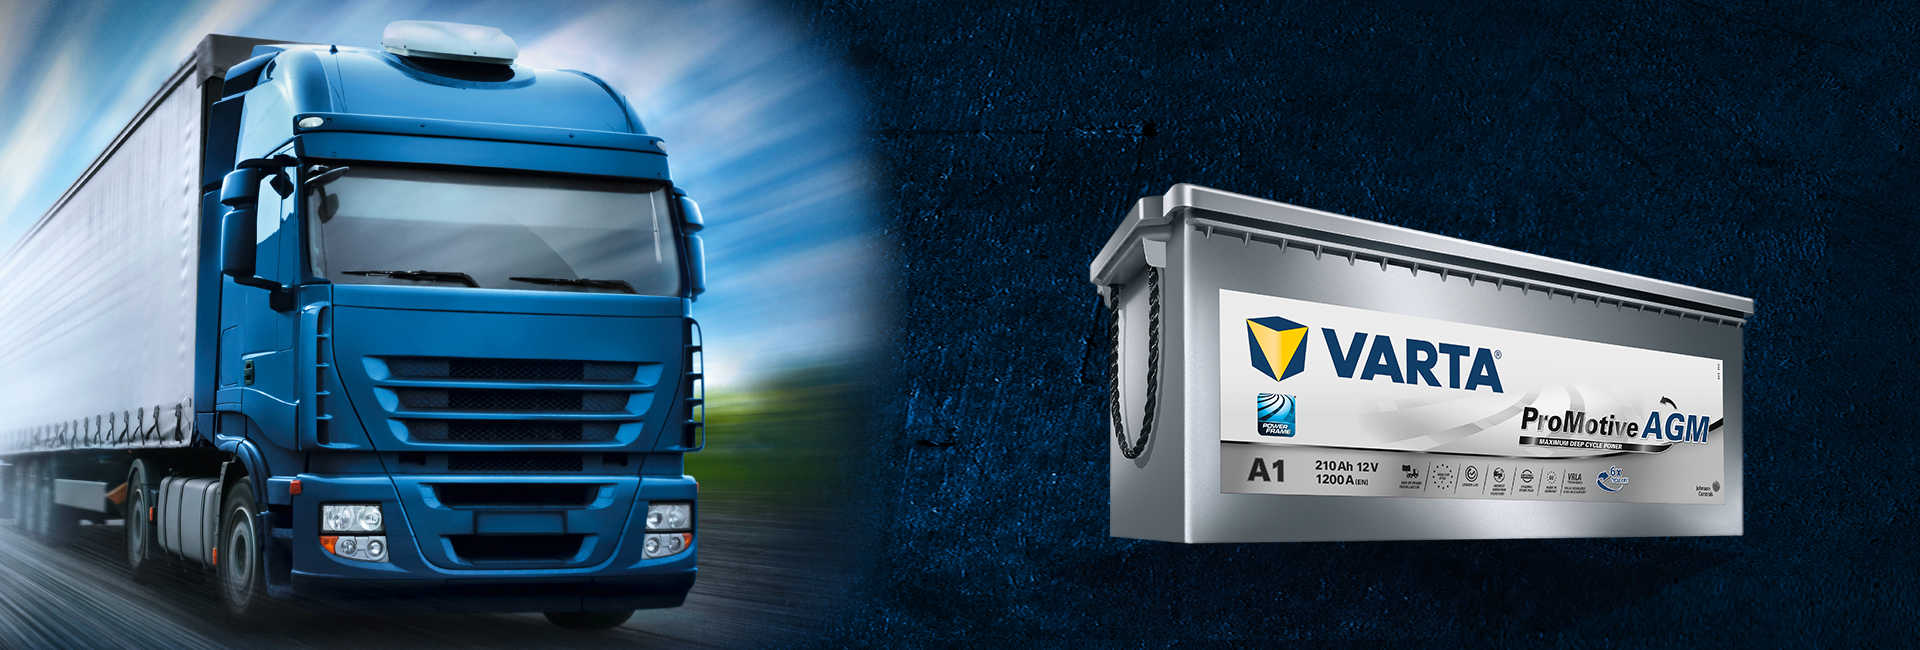 345f8e1a3b1a VARTA® AGM technology for trucks